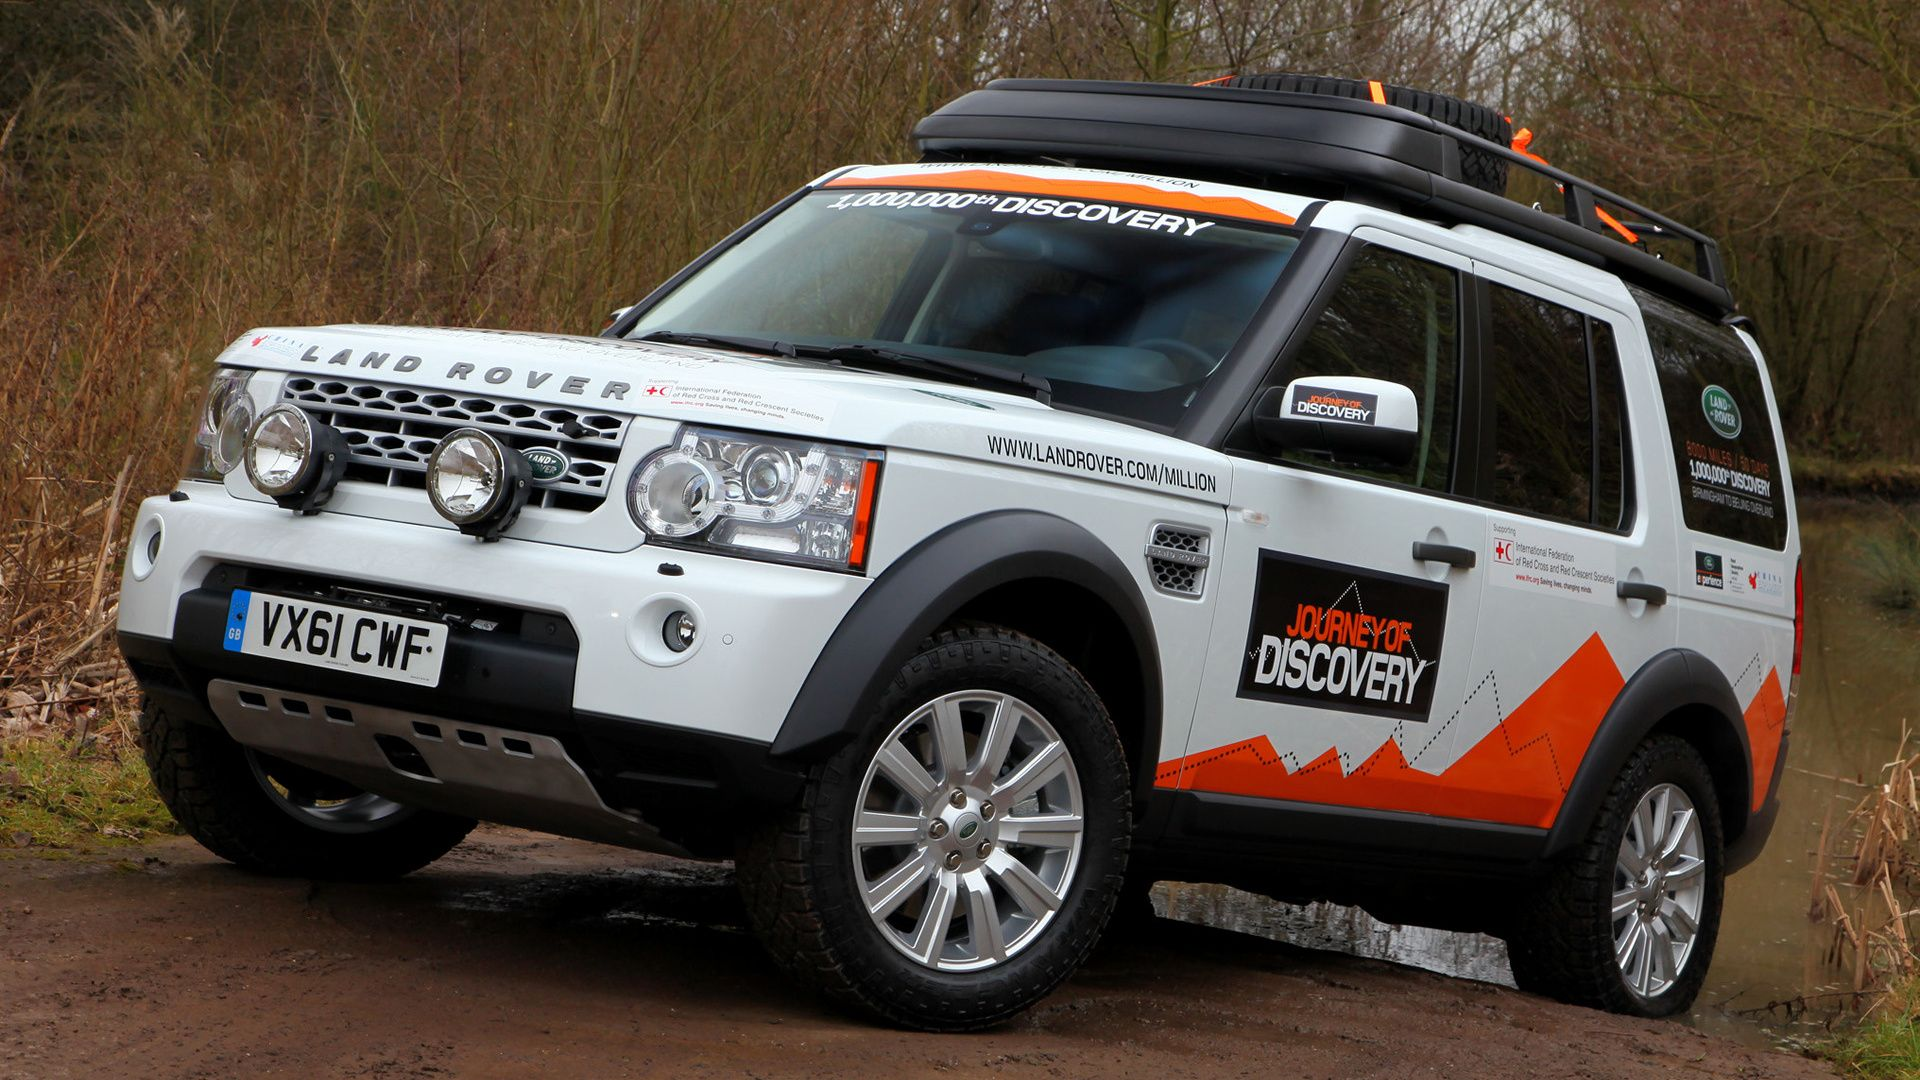 Land Rover Discovery 4 Expedition Vehicle Wallpaper Hd